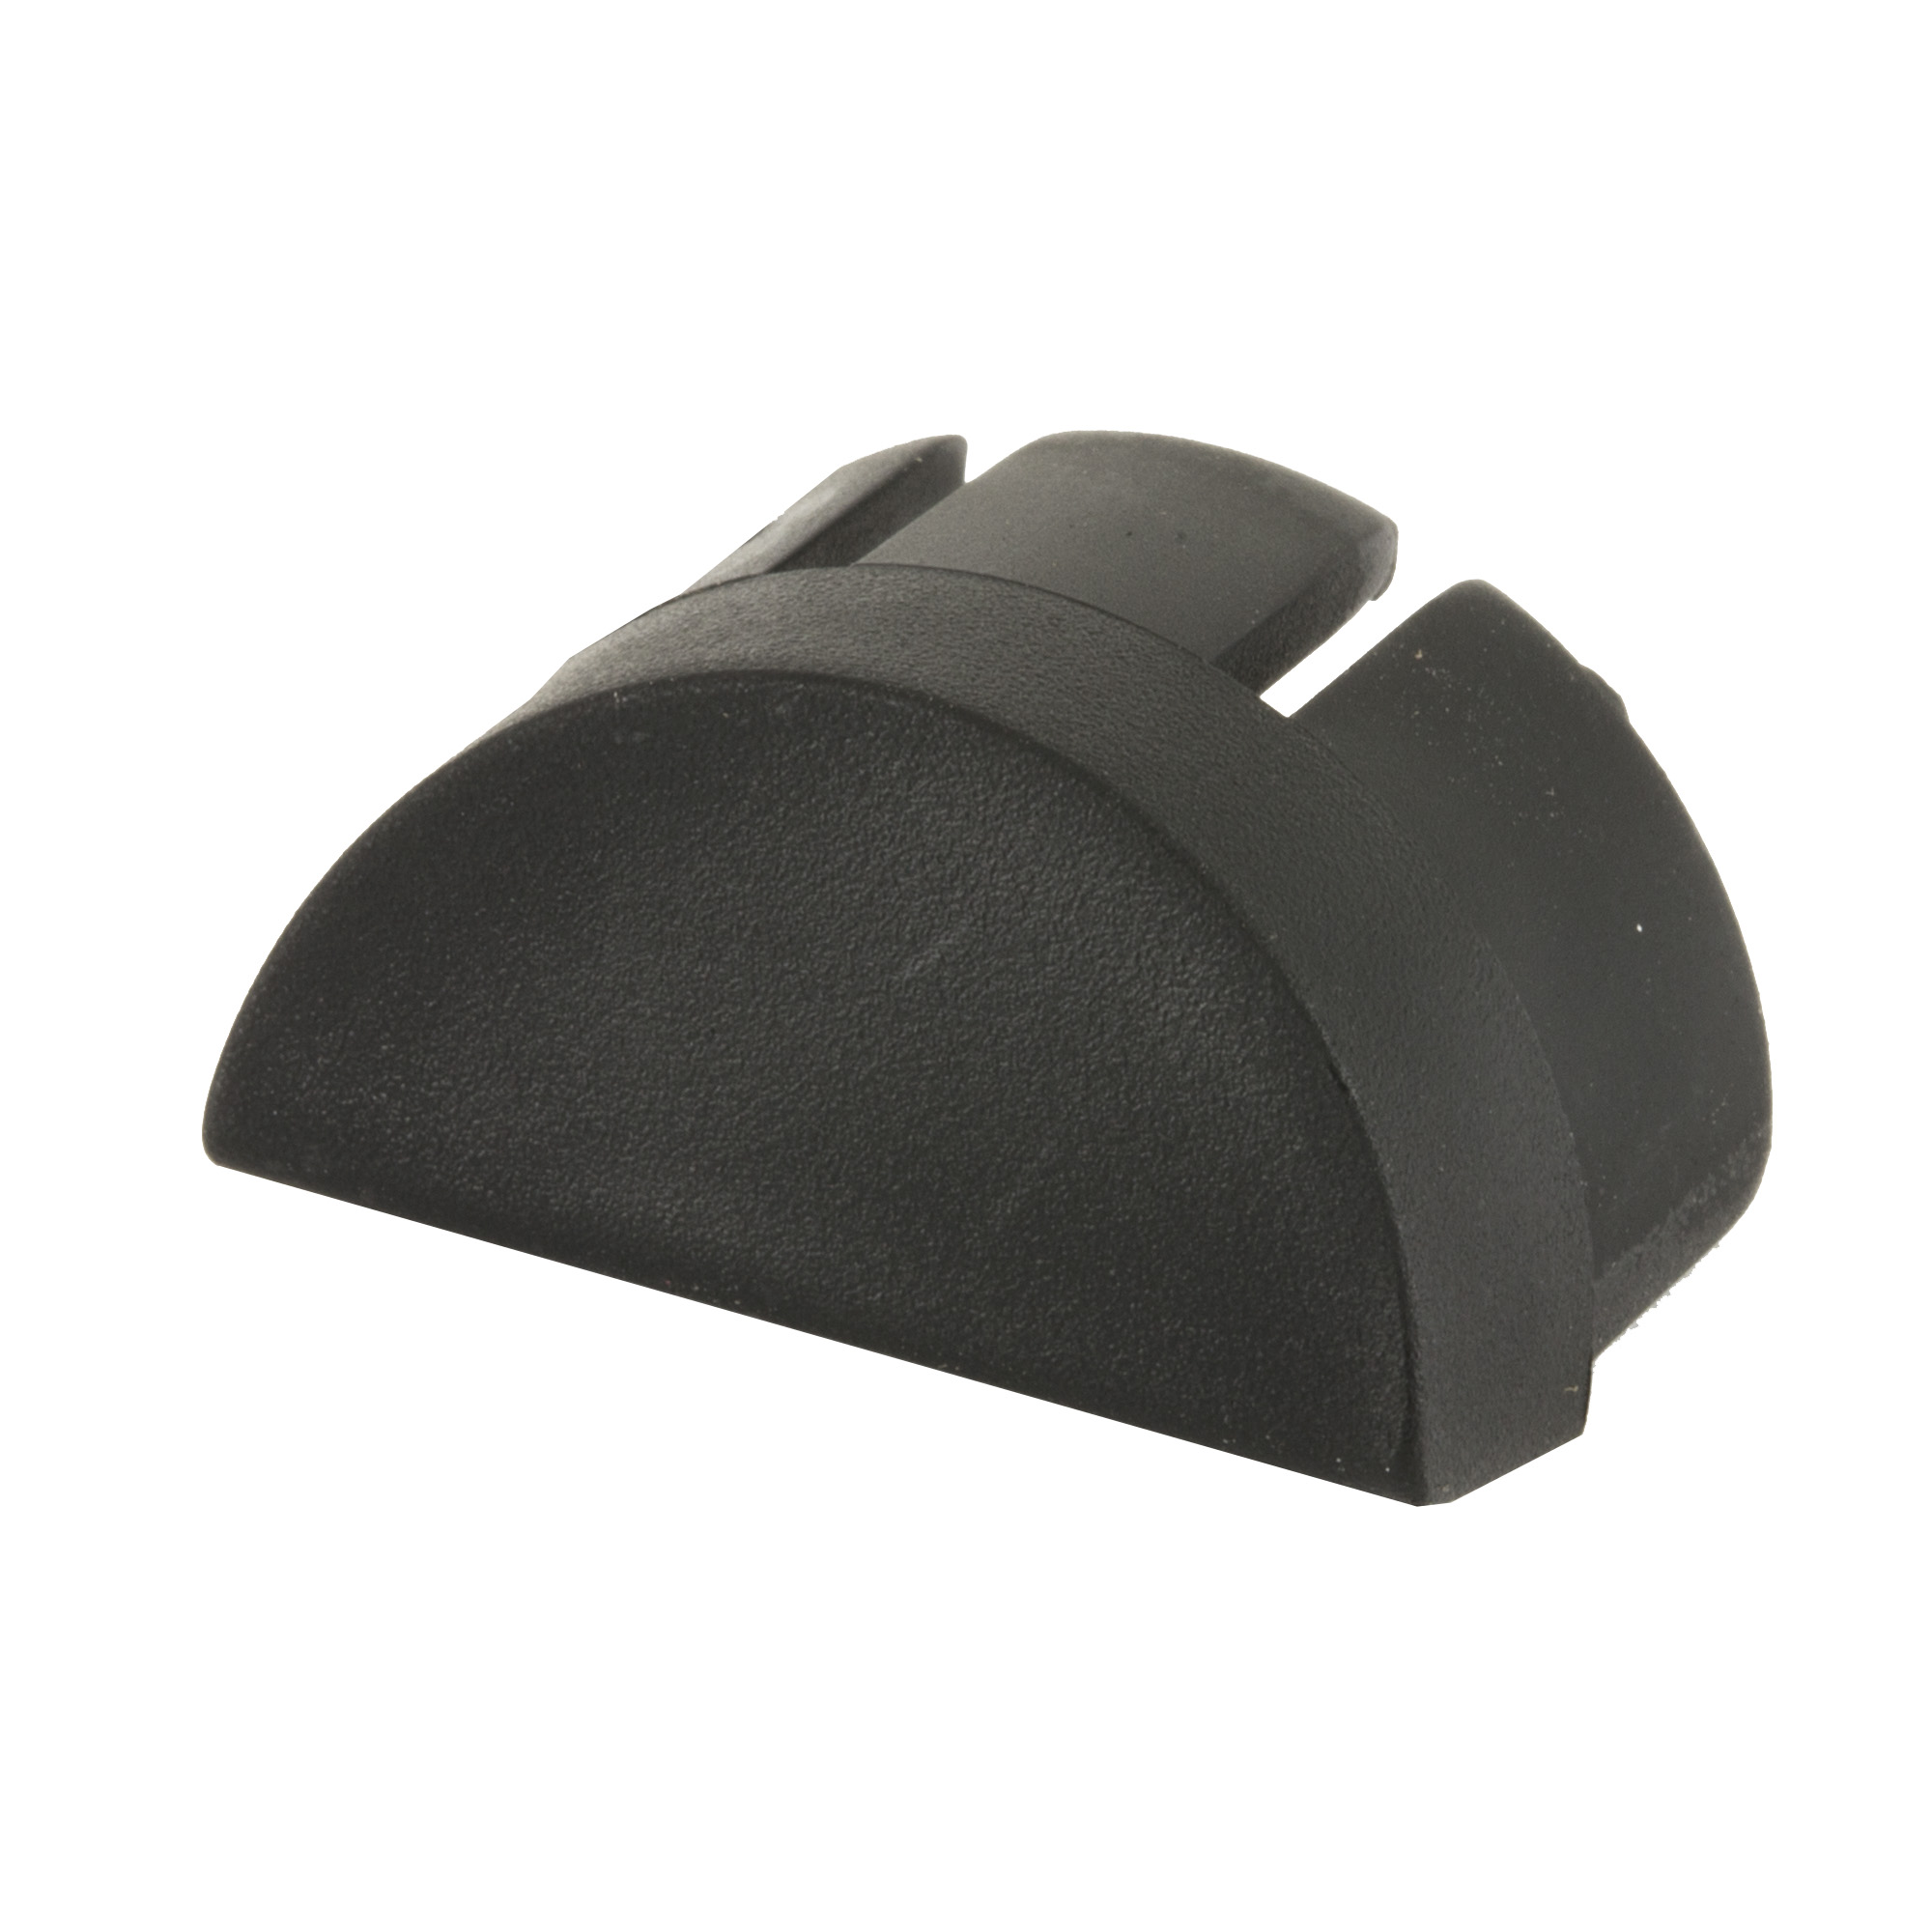 """This unit fits in the rear cavity of the Glock model 26"""" 27"""" 33 and 39. It uses a friction fit for retention. NOT FOR GEN 4 OR 5 FRAMES."""